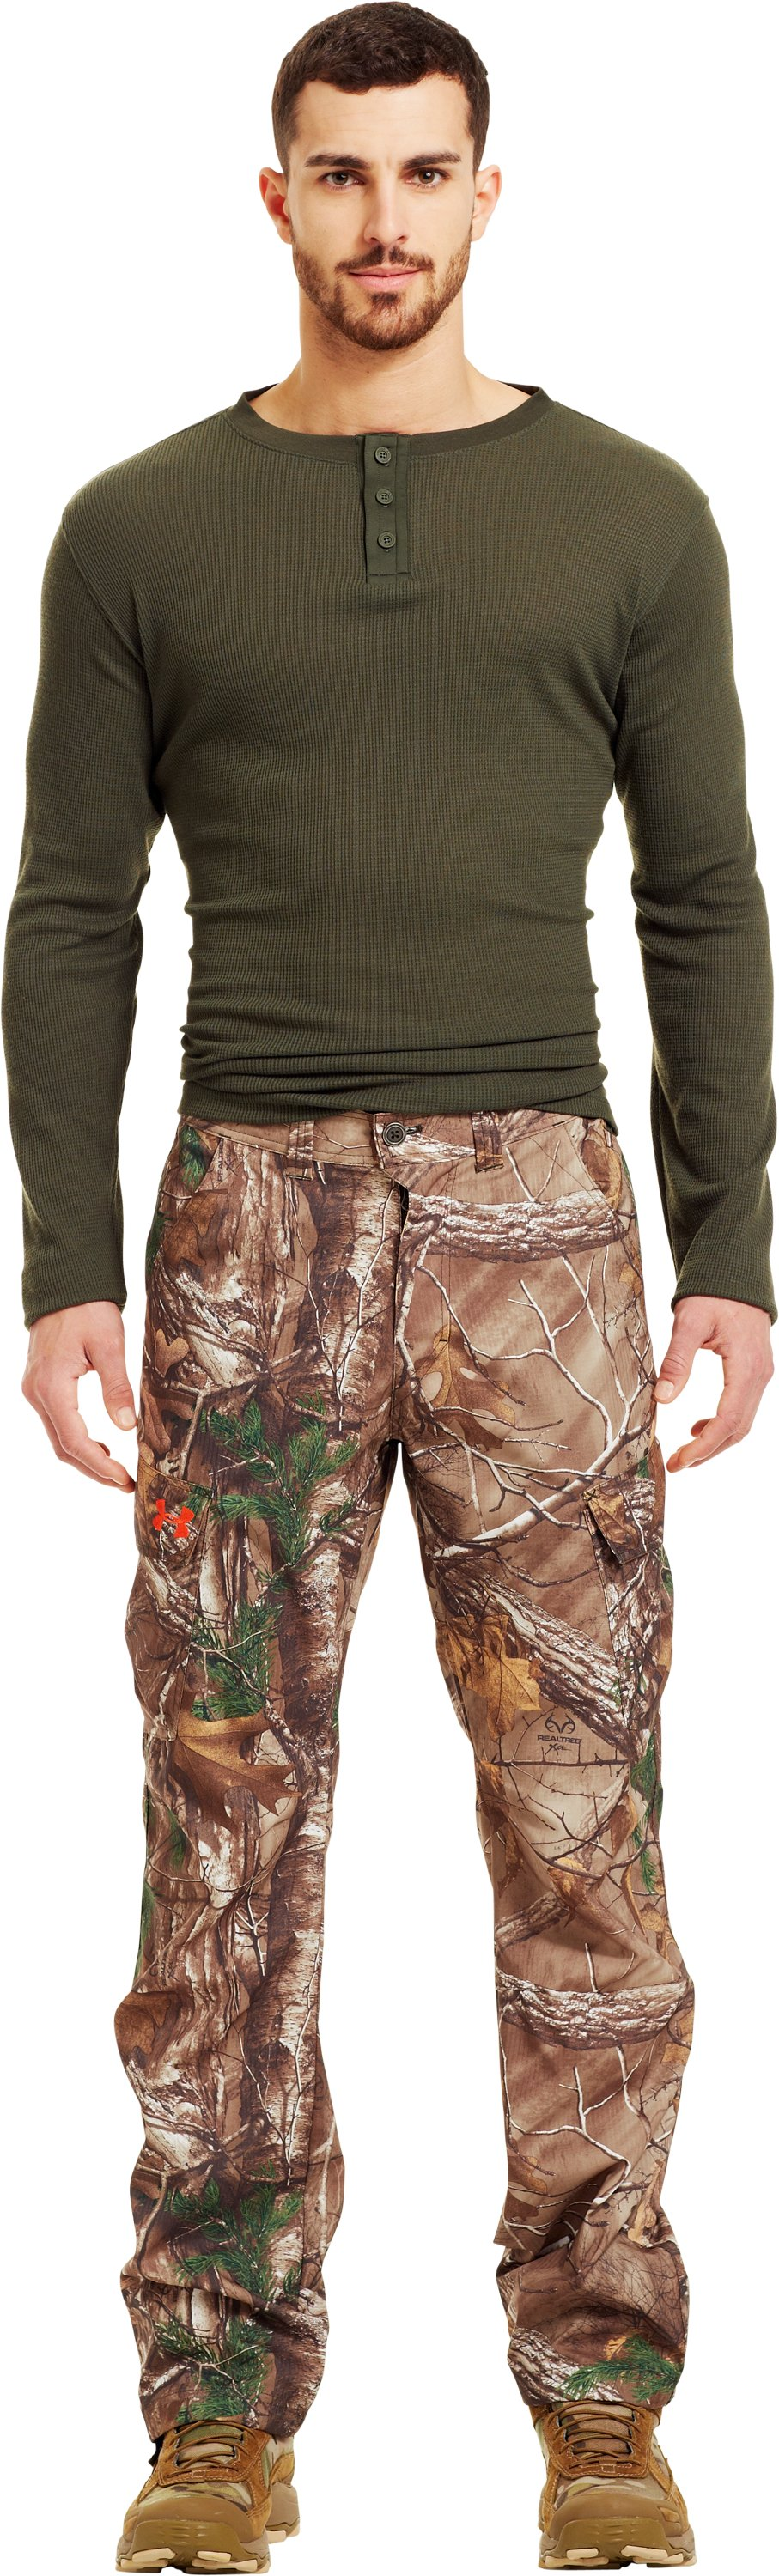 Men's UA Performance Field Pants, Mossy Oak Break-Up Infinity, Front